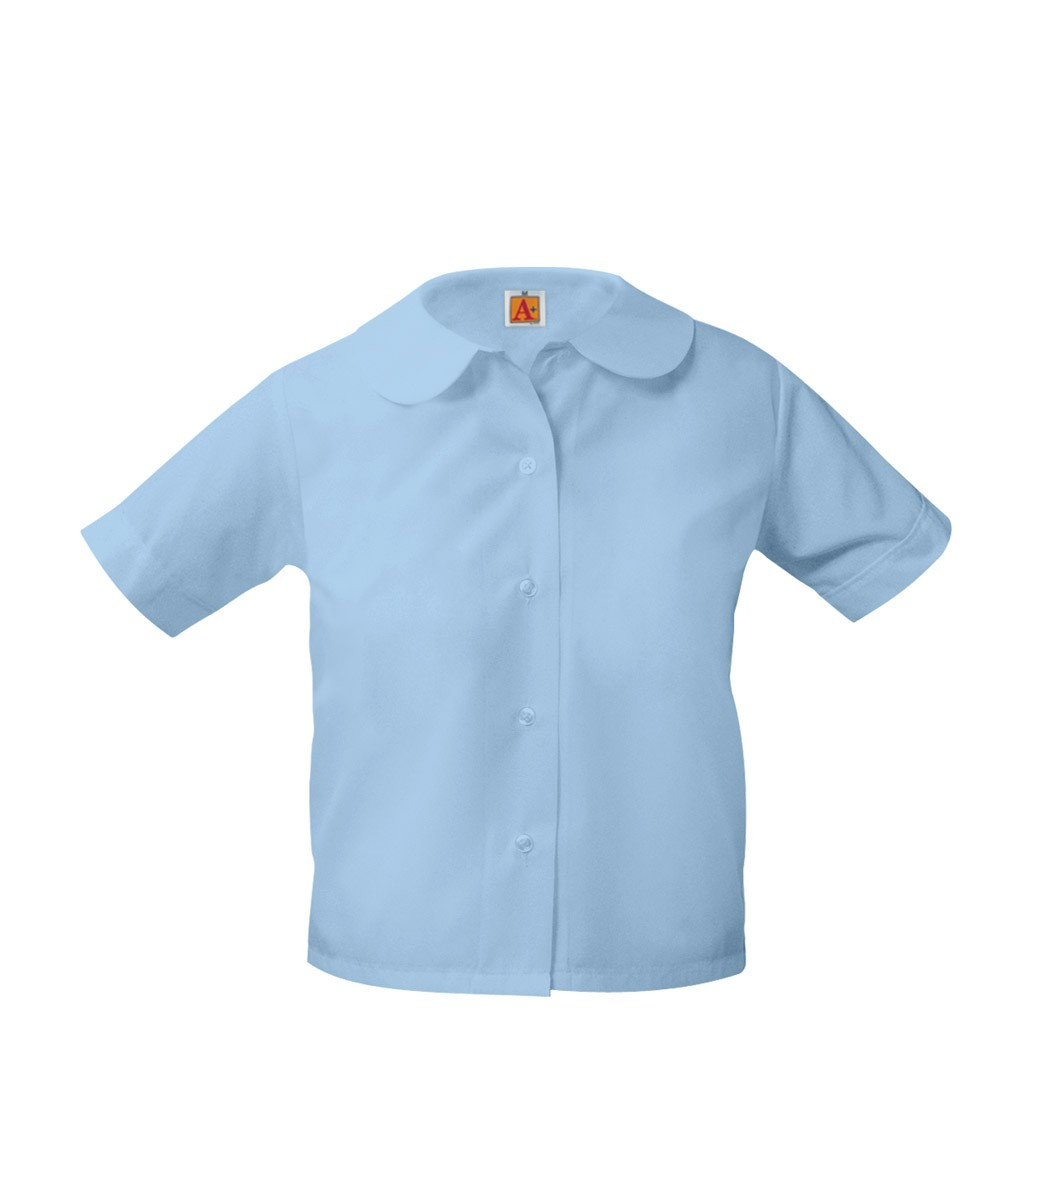 GIRLS' STORE S/S Round Collar Blouse - Available in White, Yellow & Light Blue